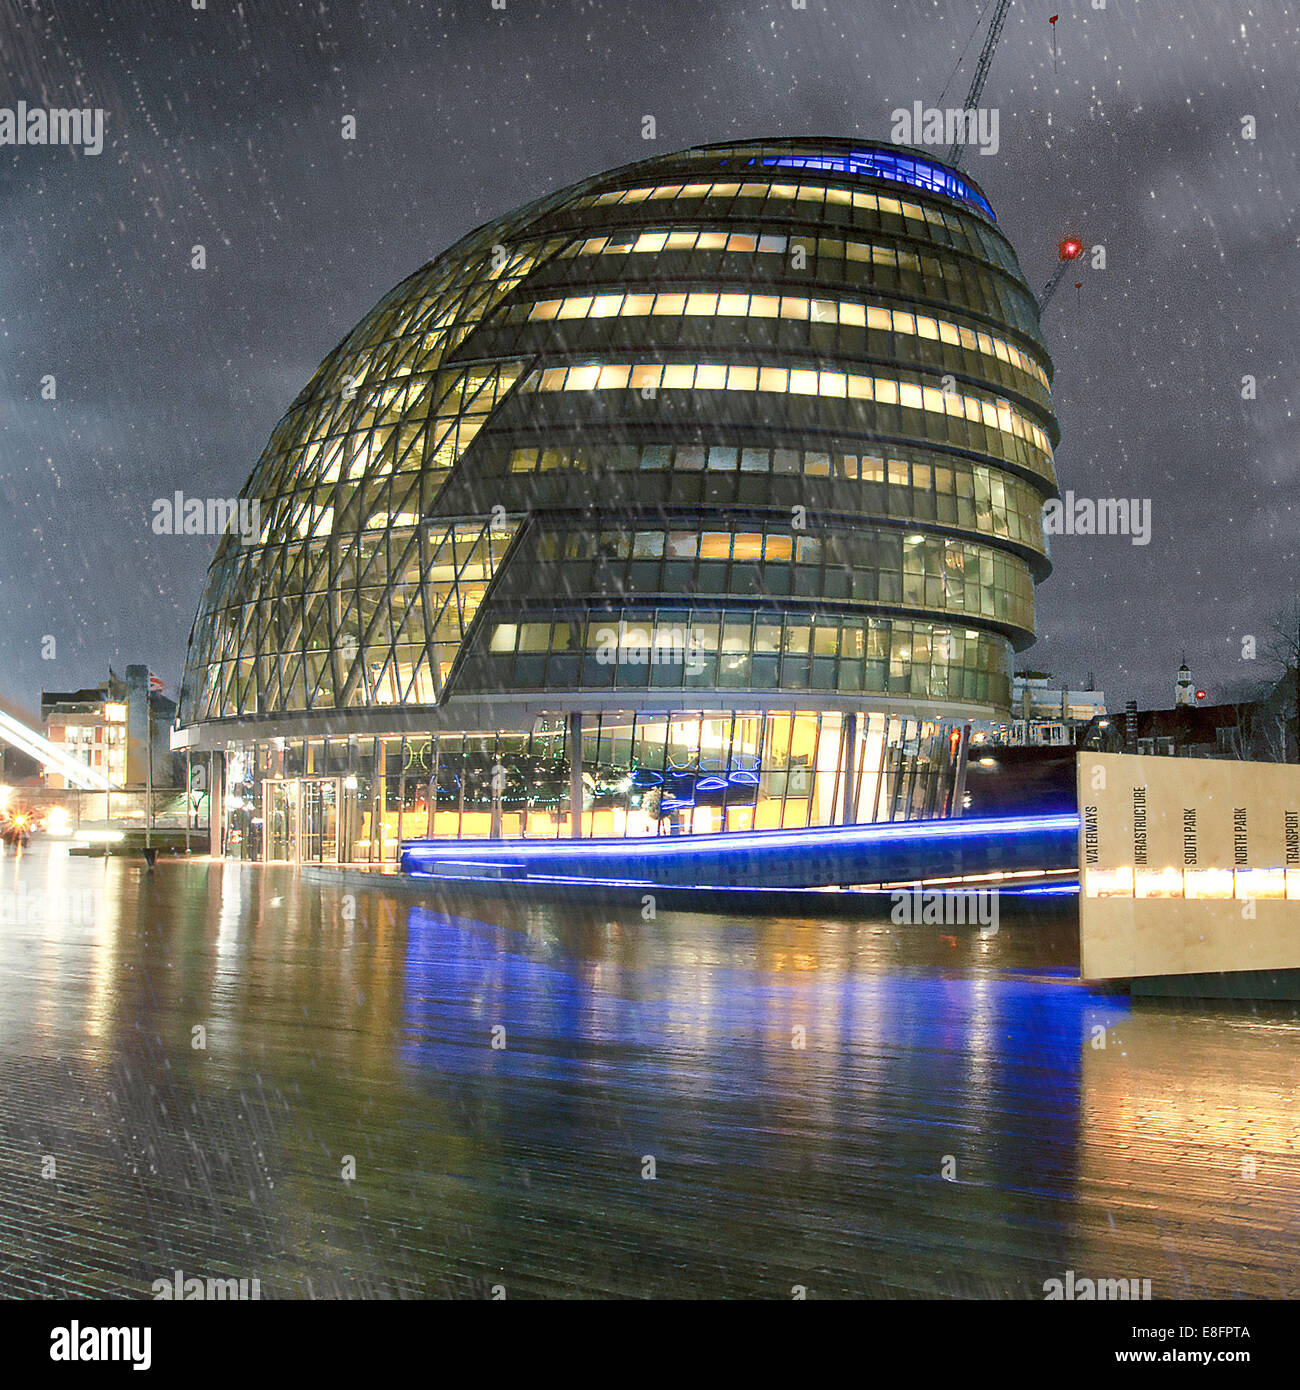 City Hall in the rain, London, England, UK - Stock Image